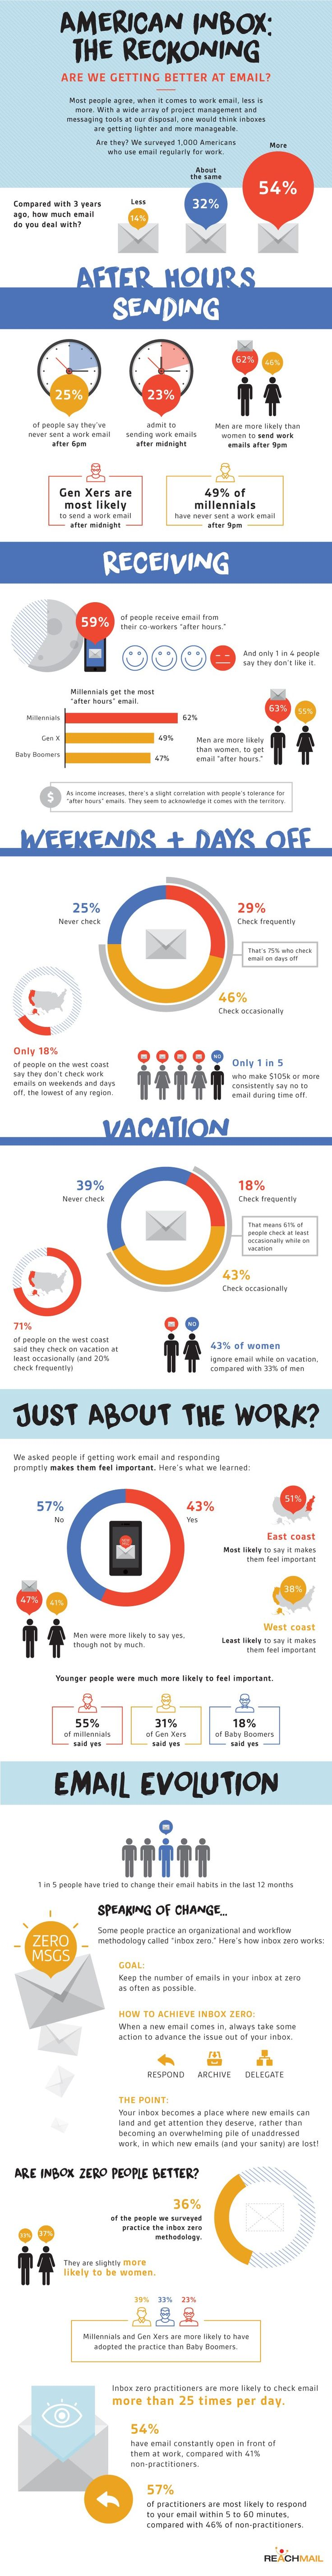 How we deal with email #infographic http://bit.ly/2mvUxoF